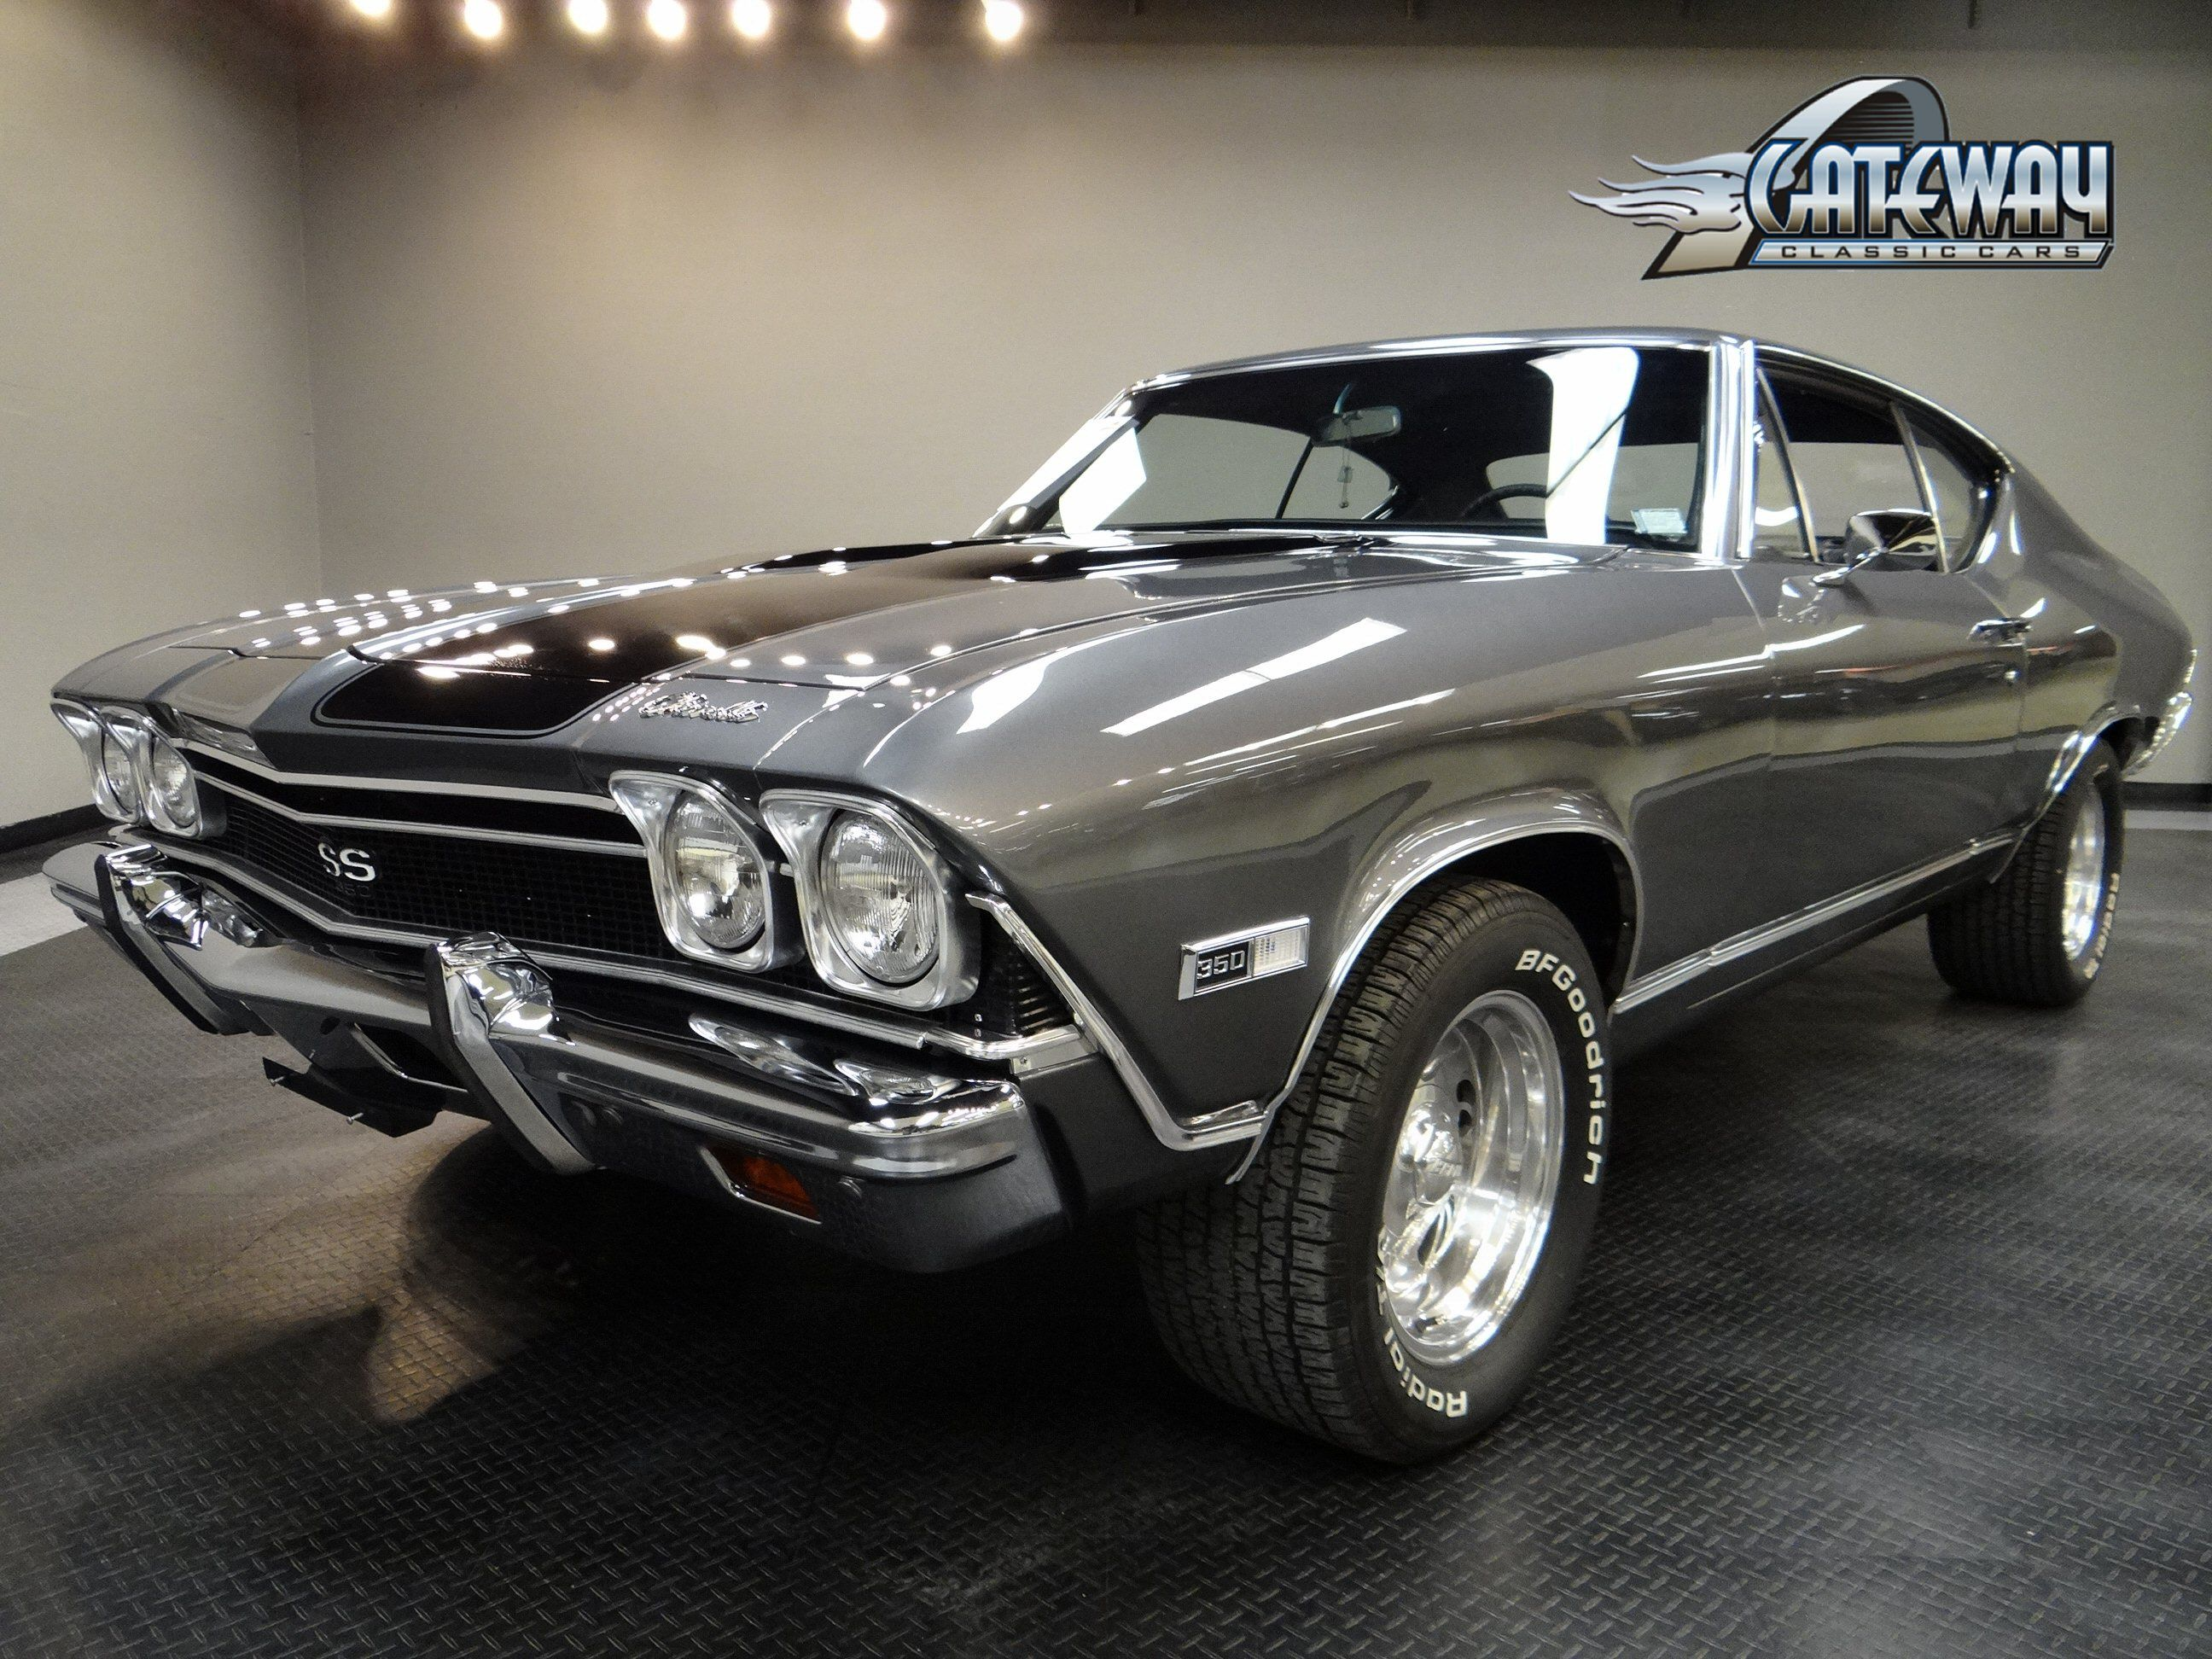 1968 Chevrolet Chevelle SS Clone for Sale - Gateway Classic Cars ...